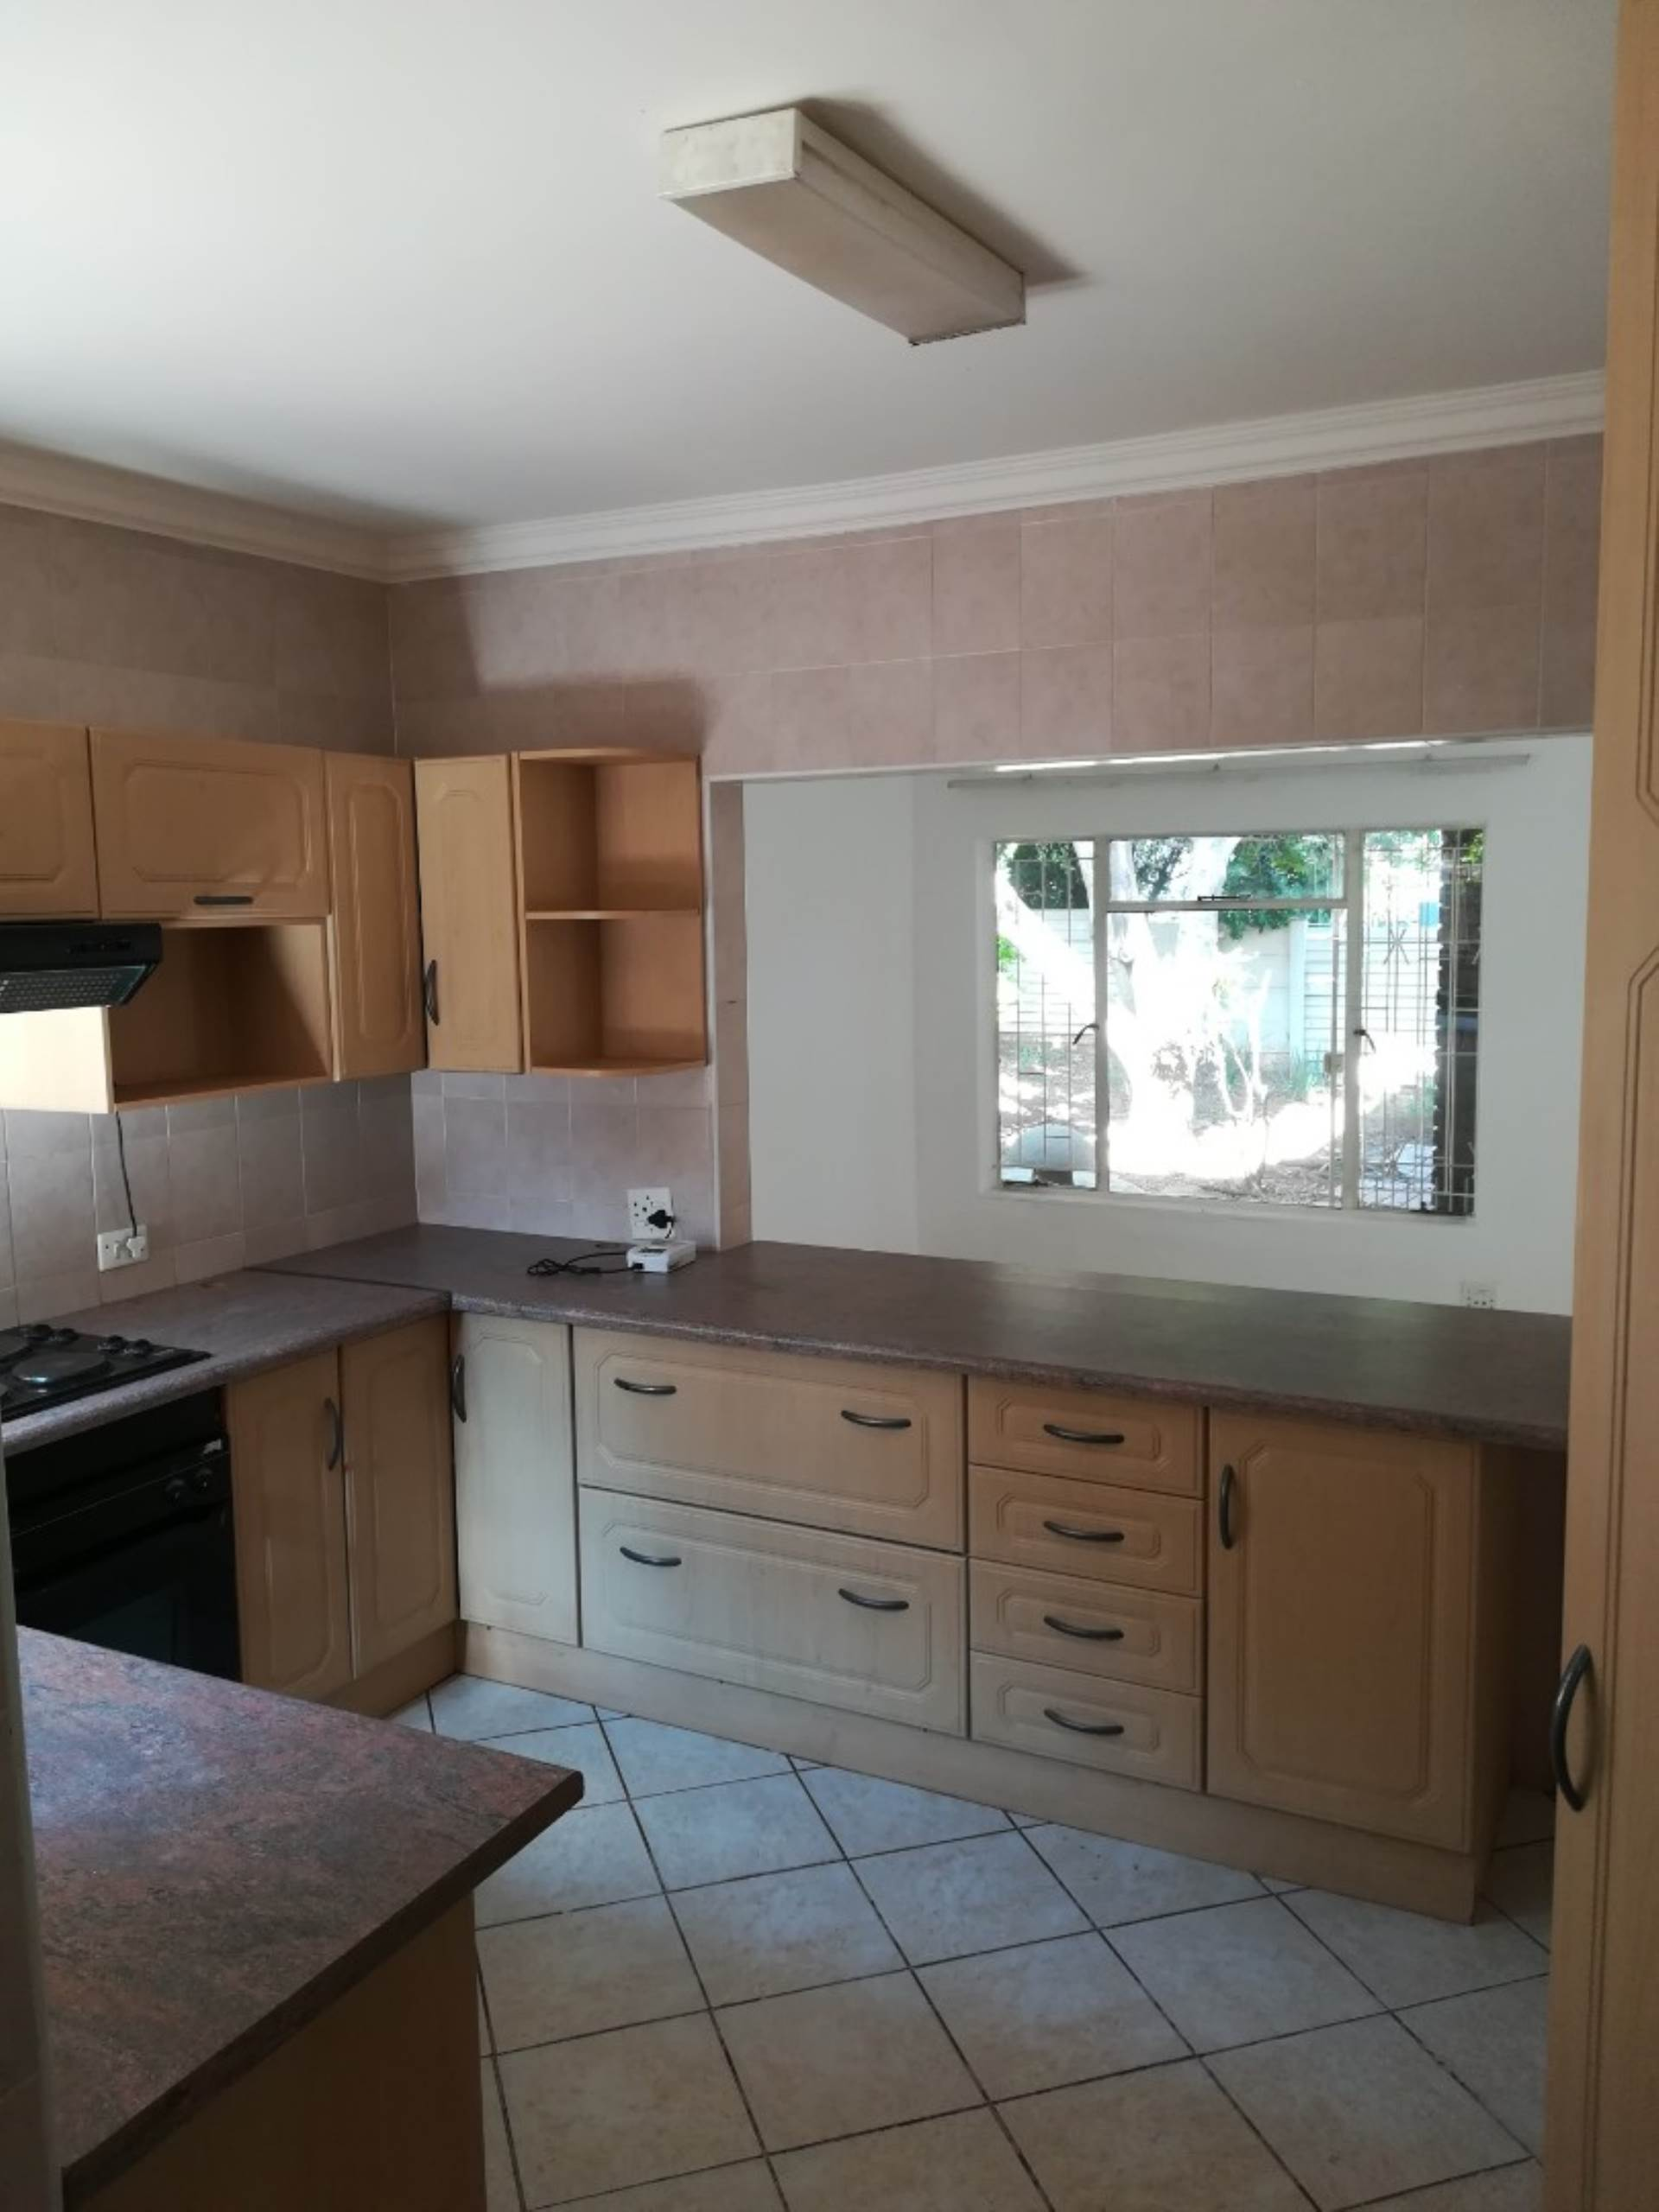 Zwartkop And Ext property for sale. Ref No: 13577078. Picture no 14